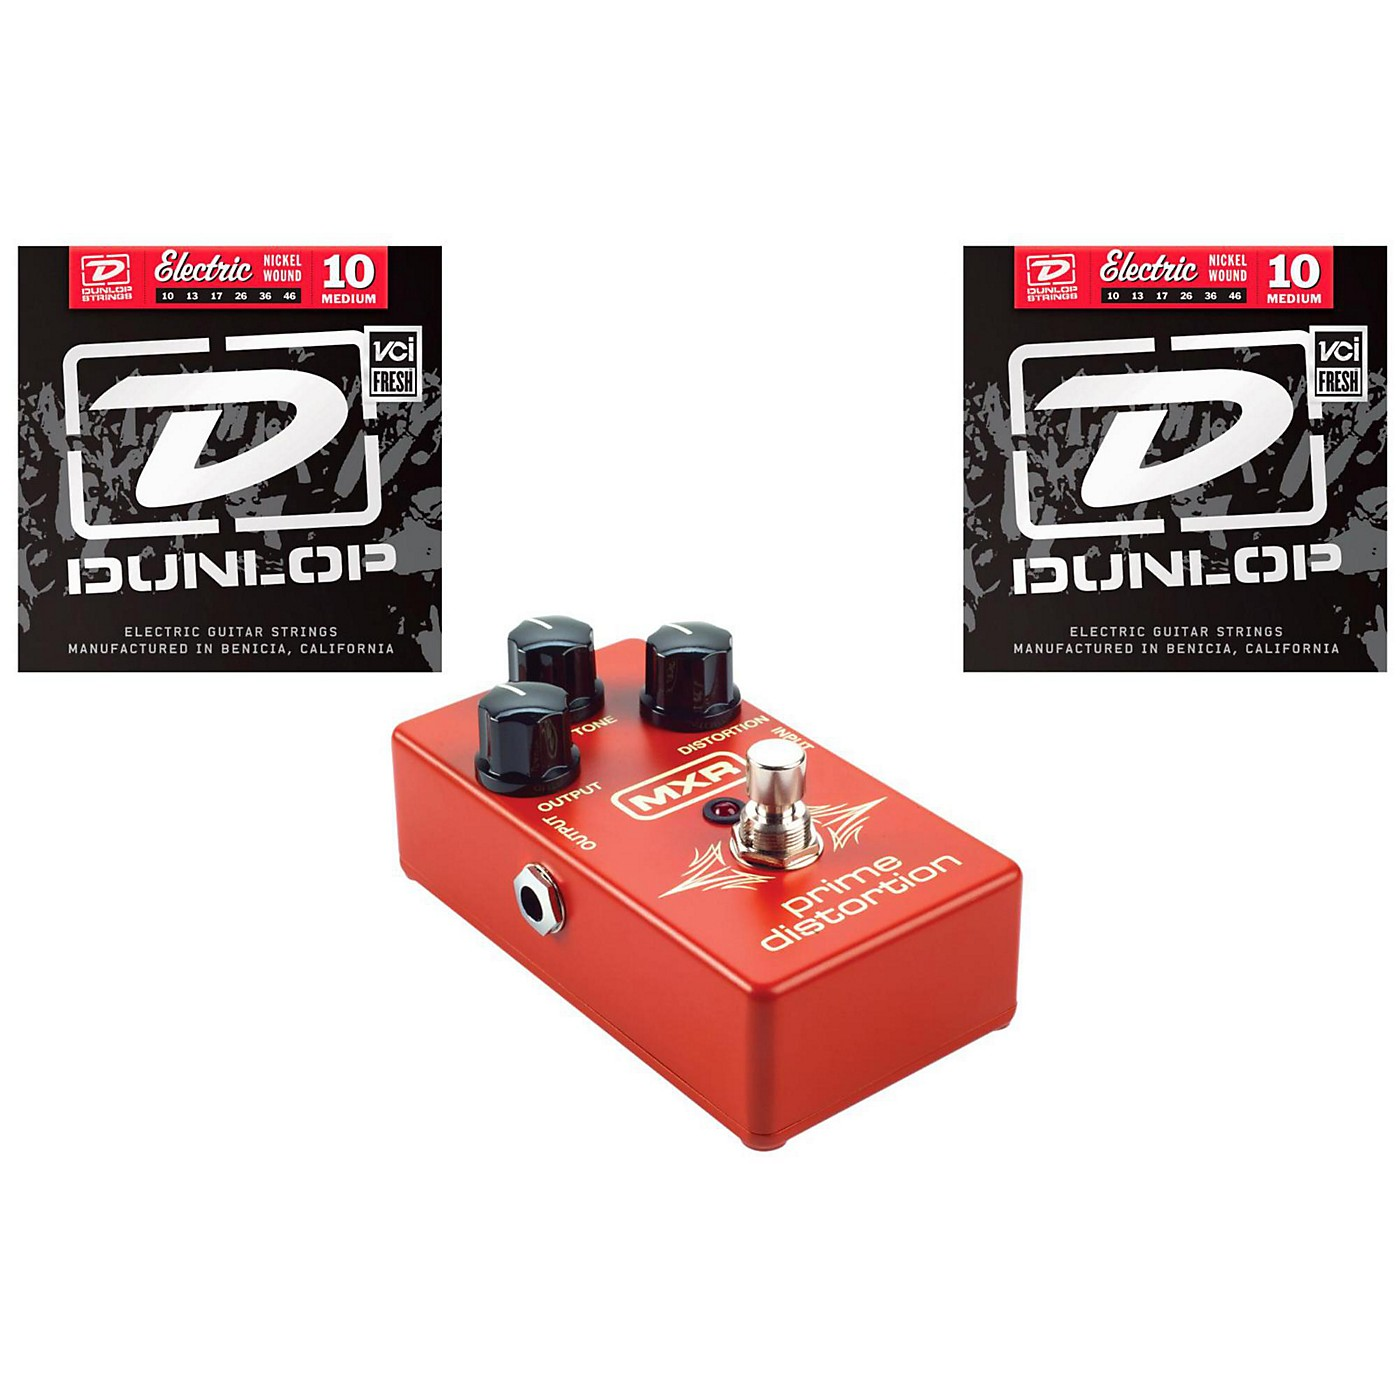 Dunlop MXR M69 Pedal with Two Sets of Dunlop DEN1046 Strings thumbnail